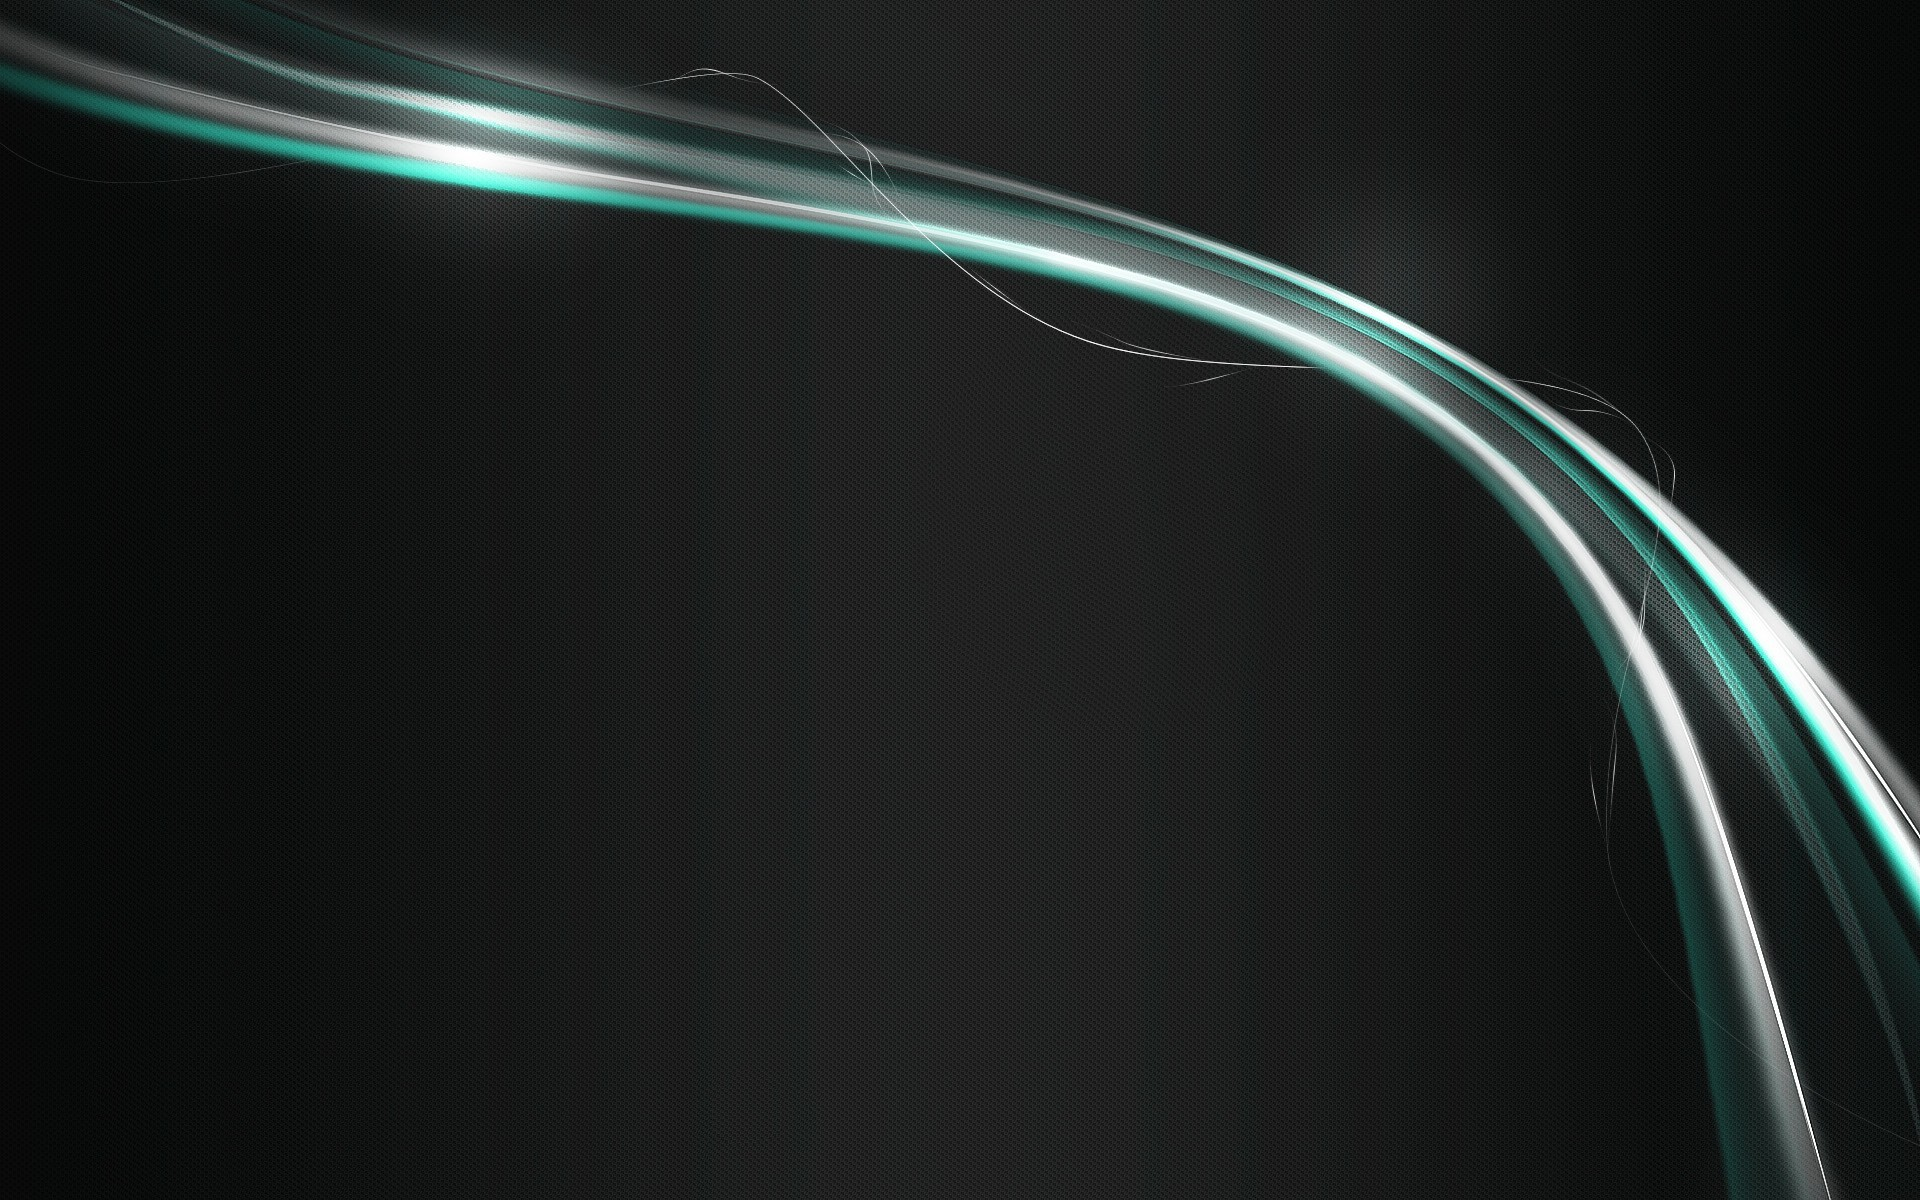 minimalism simple background abstract simple